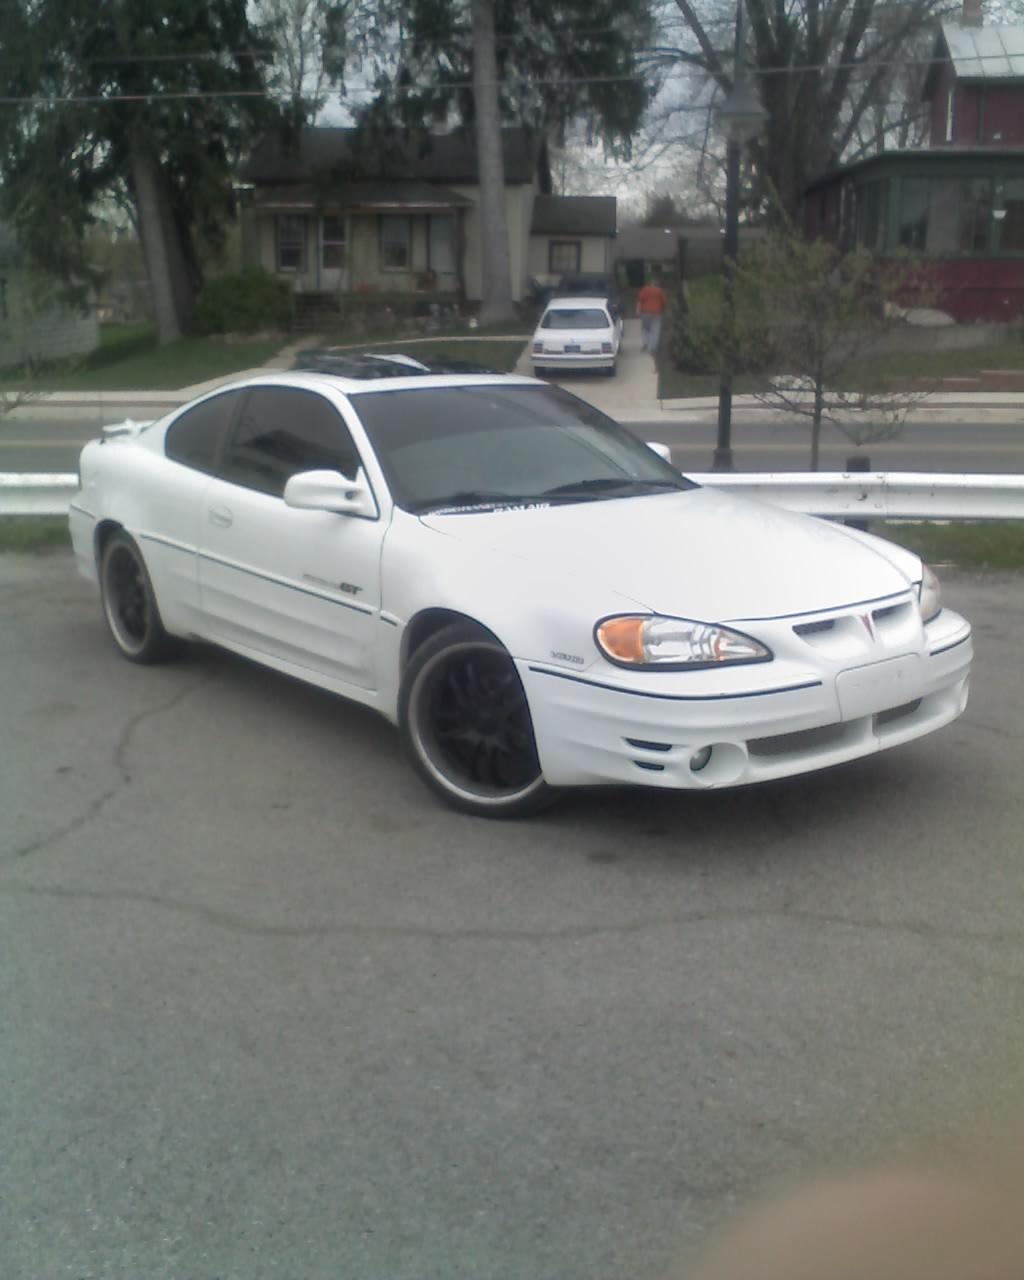 9902gagt 1999 pontiac grand amgt coupe 2d specs photos modification info at cardomain cardomain